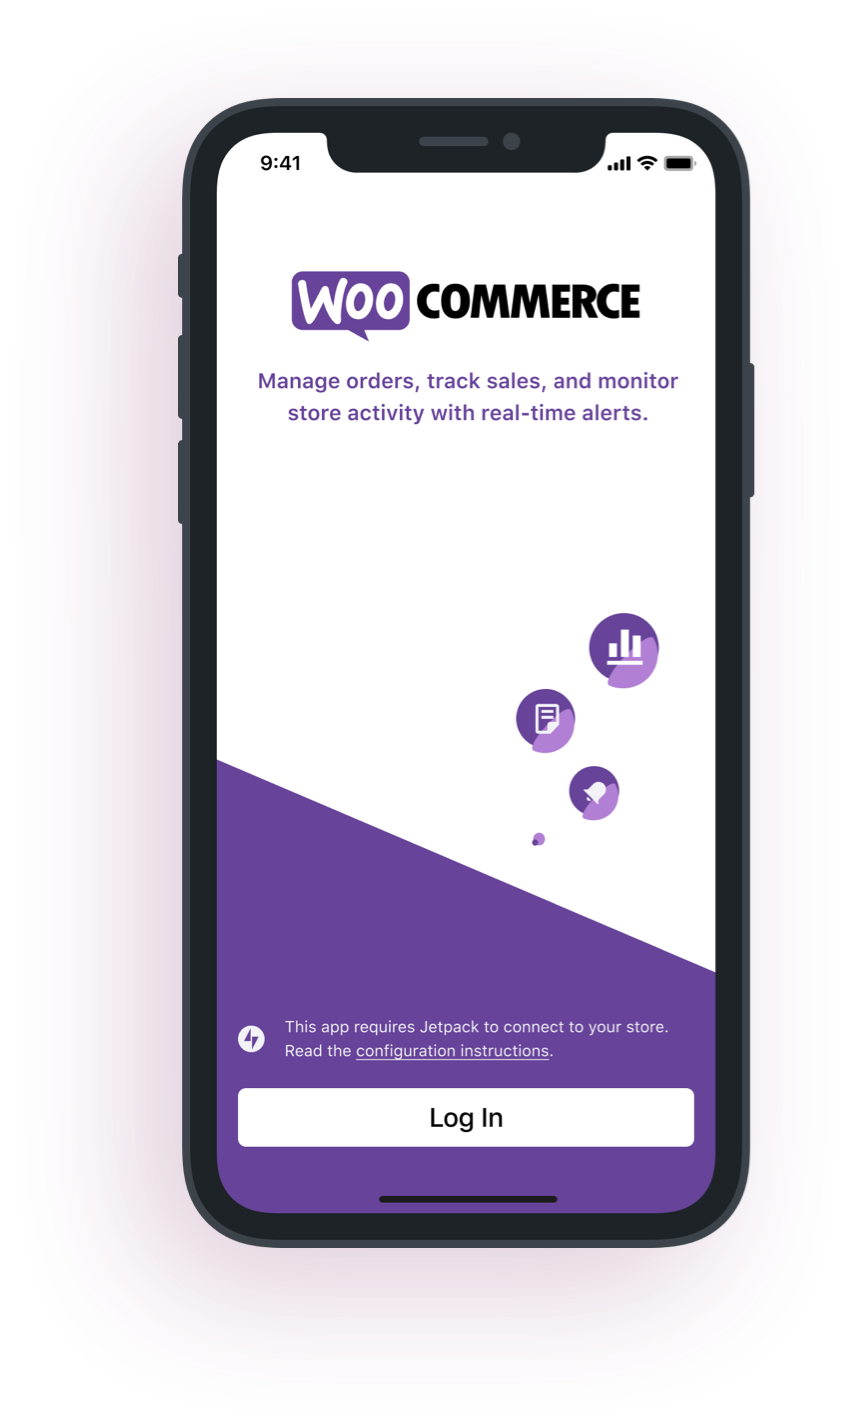 Woocommerce Mobile App For Iphone Android Your Woocommerce Store In Your Pocket